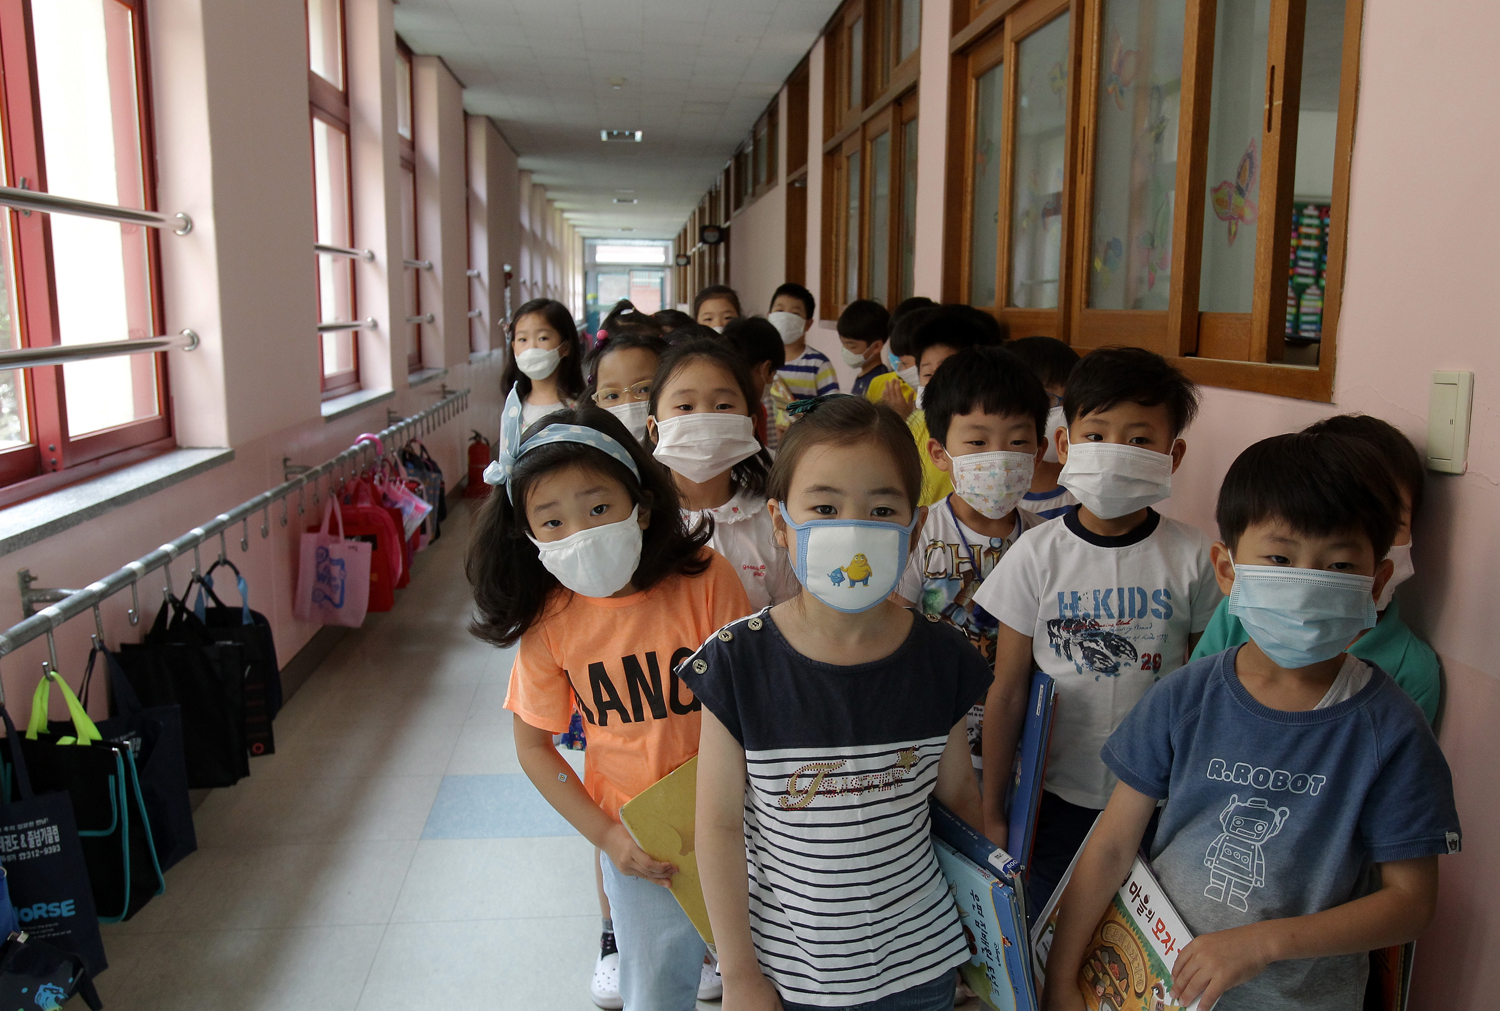 Elementary school students wear masks as a precaution against the MERS virus as they wait for a lesson to start at Midong Elementary School on June 9, 2015 in Seoul, South Korea.